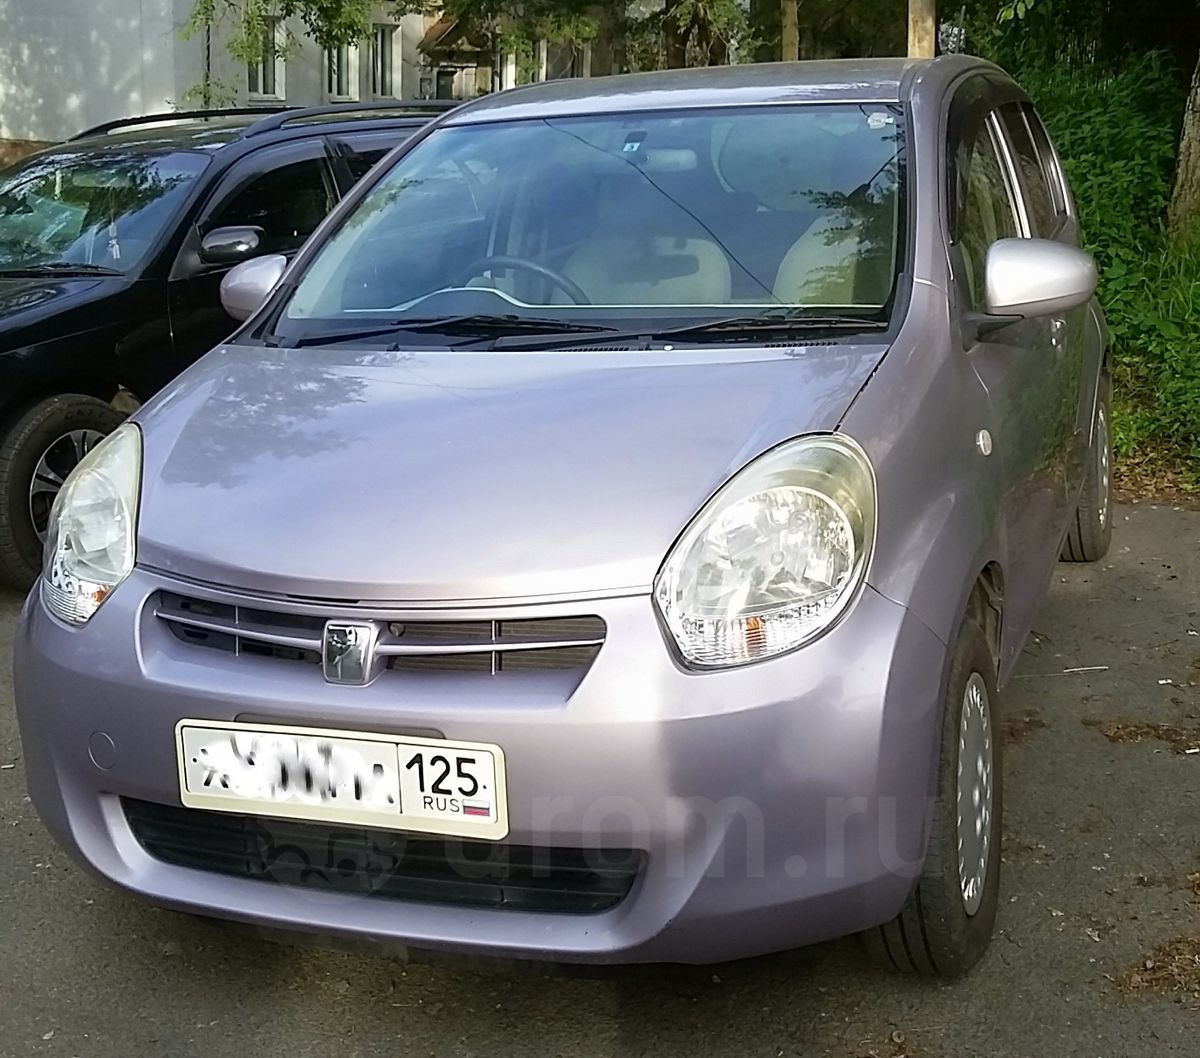 P12 - GREYISH PURPLE.jpg